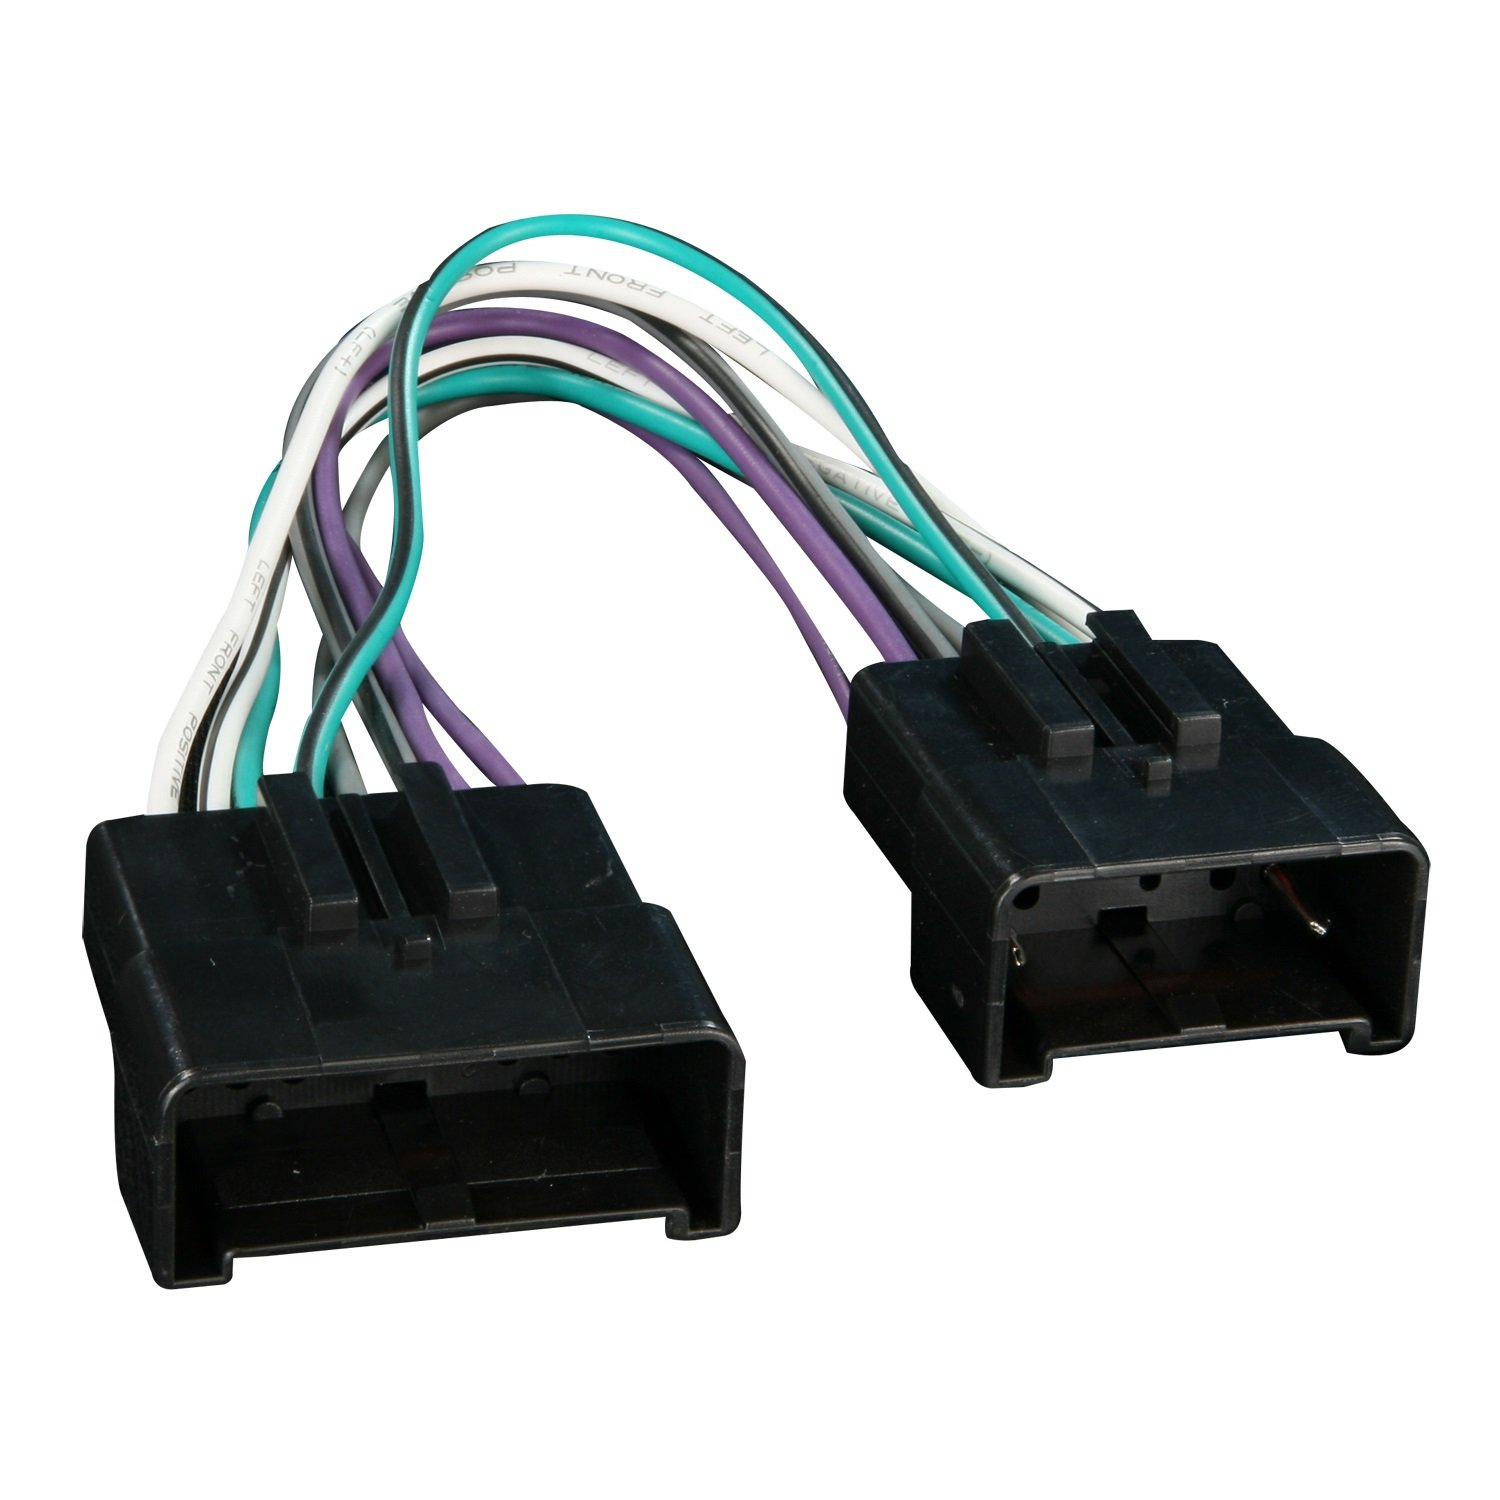 71pSHbvTl0L._SL1500_ amazon com metra 70 5513 radio wiring harness for ford amplifier metra wiring harness ford at cos-gaming.co